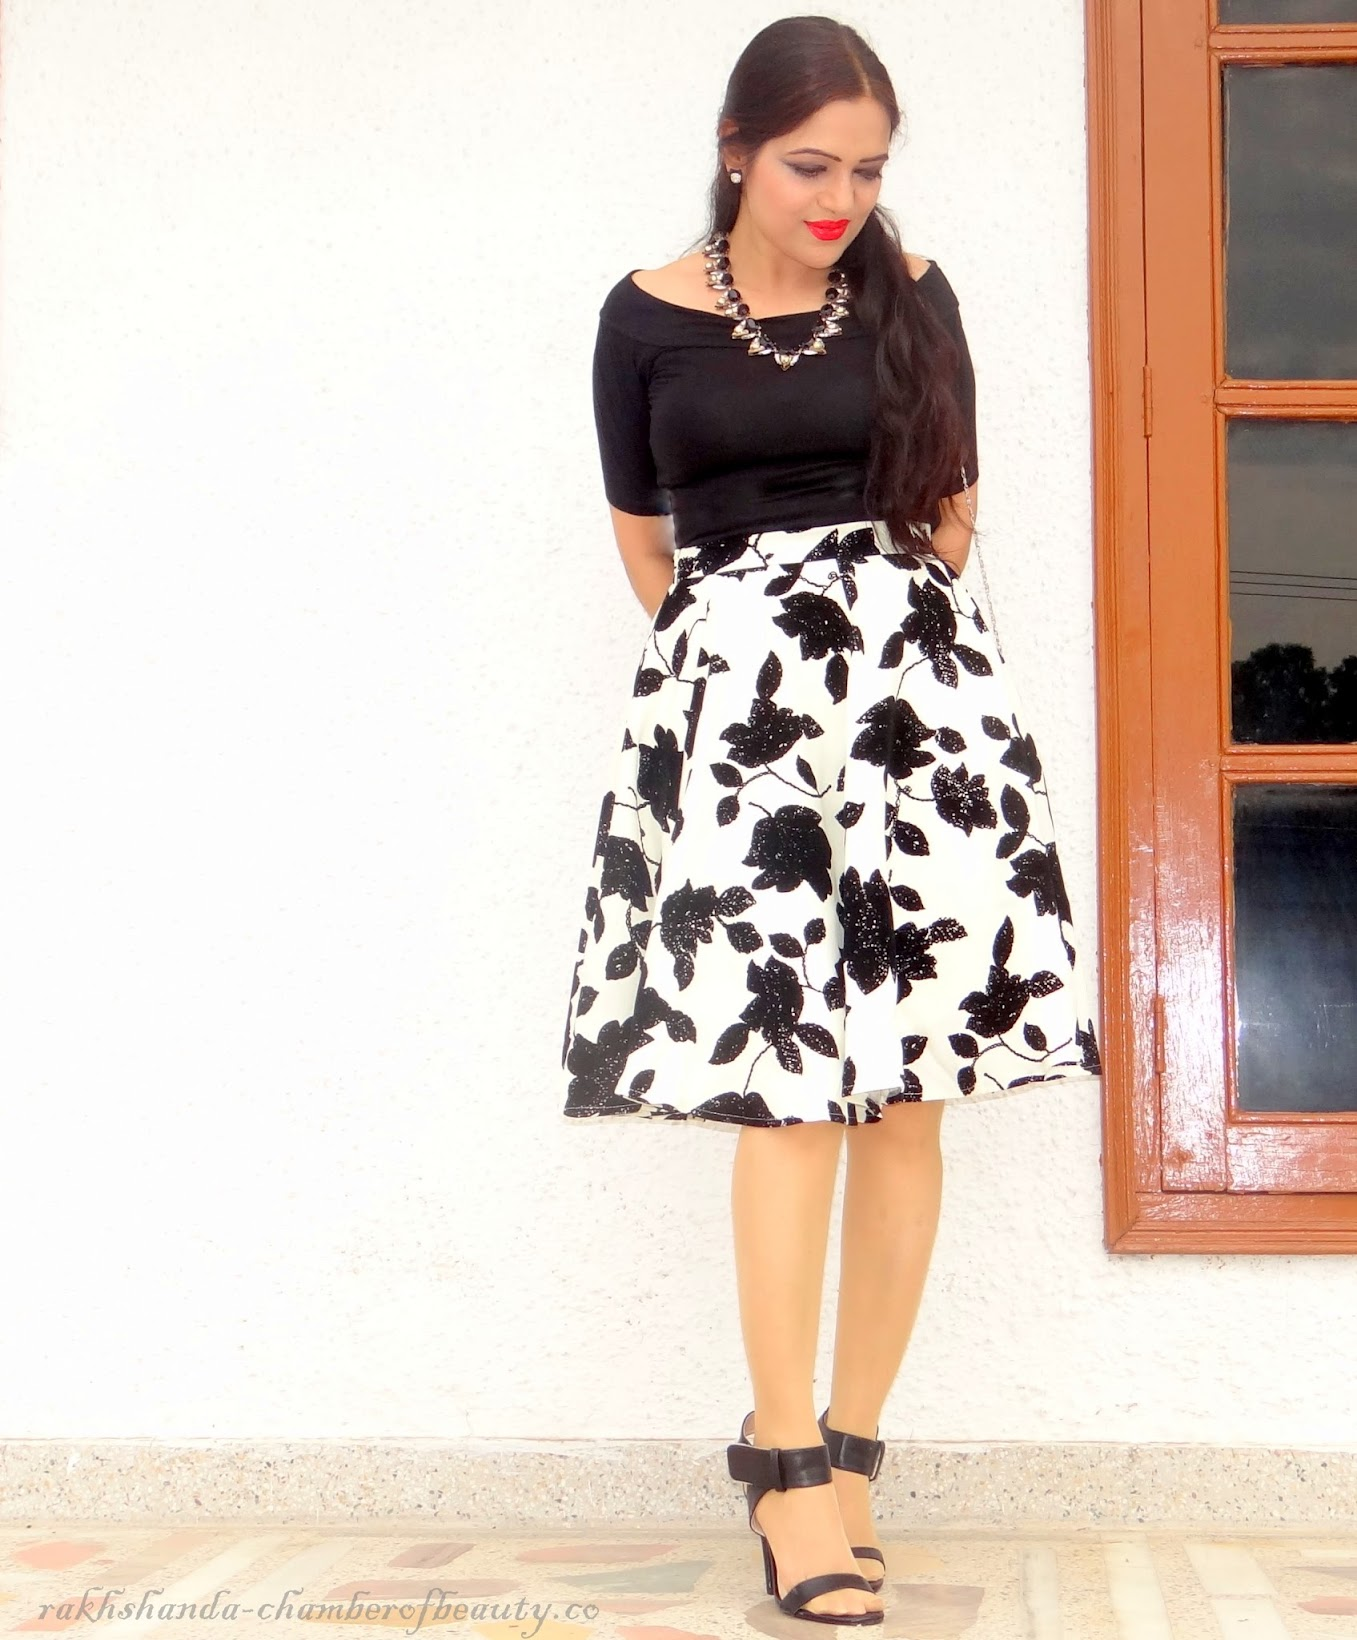 Summer Fashion- Monochromed it (OOTD)| How to style a black and white midi skirt, OOTD, Summer fashion trend, Zaful, Stalkbuylove, Indian fashion blogger